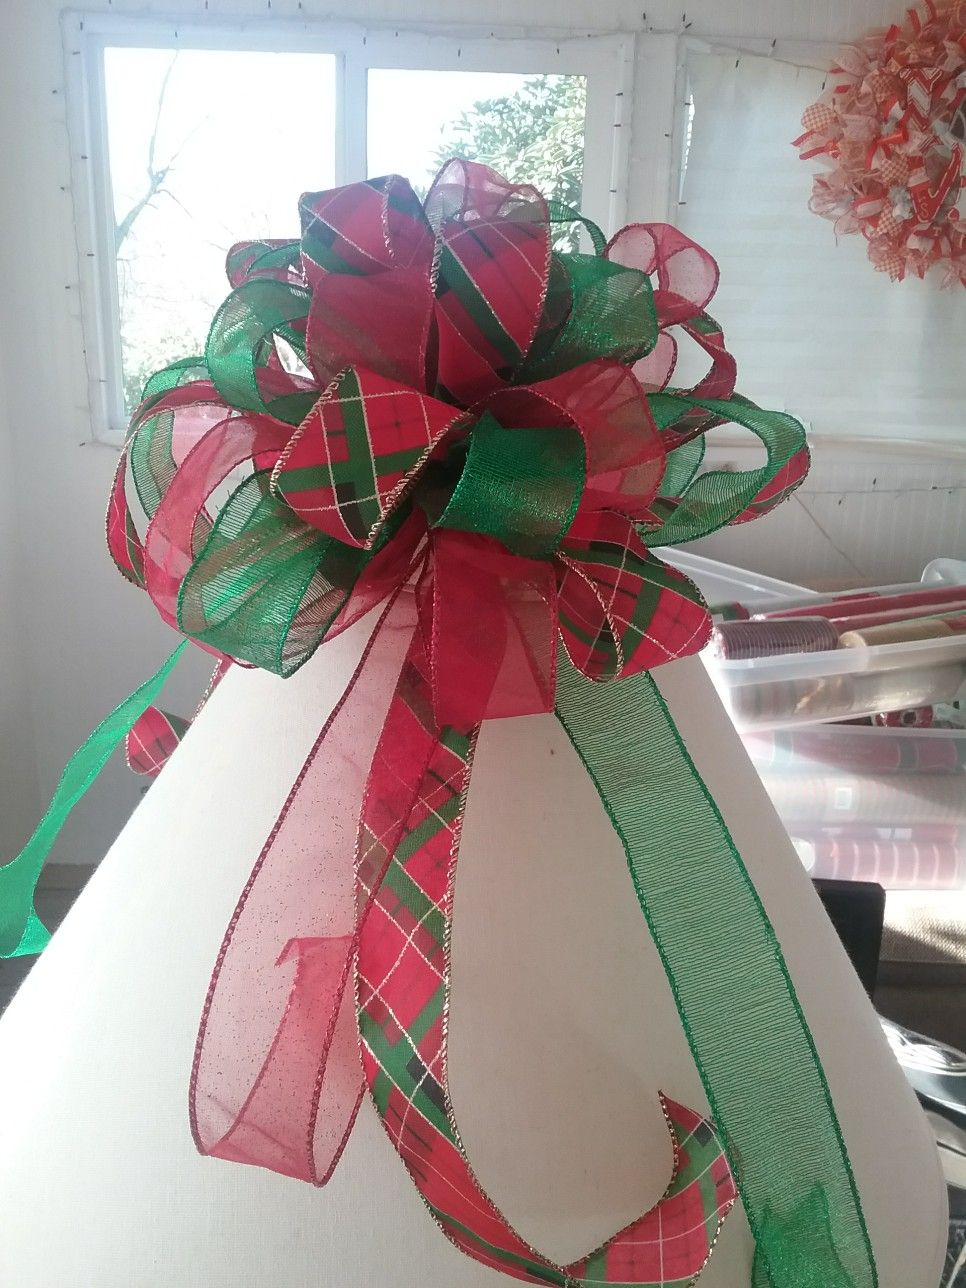 Pin by Debbie Snyder on Deco Mesh Wreaths made by Debbie